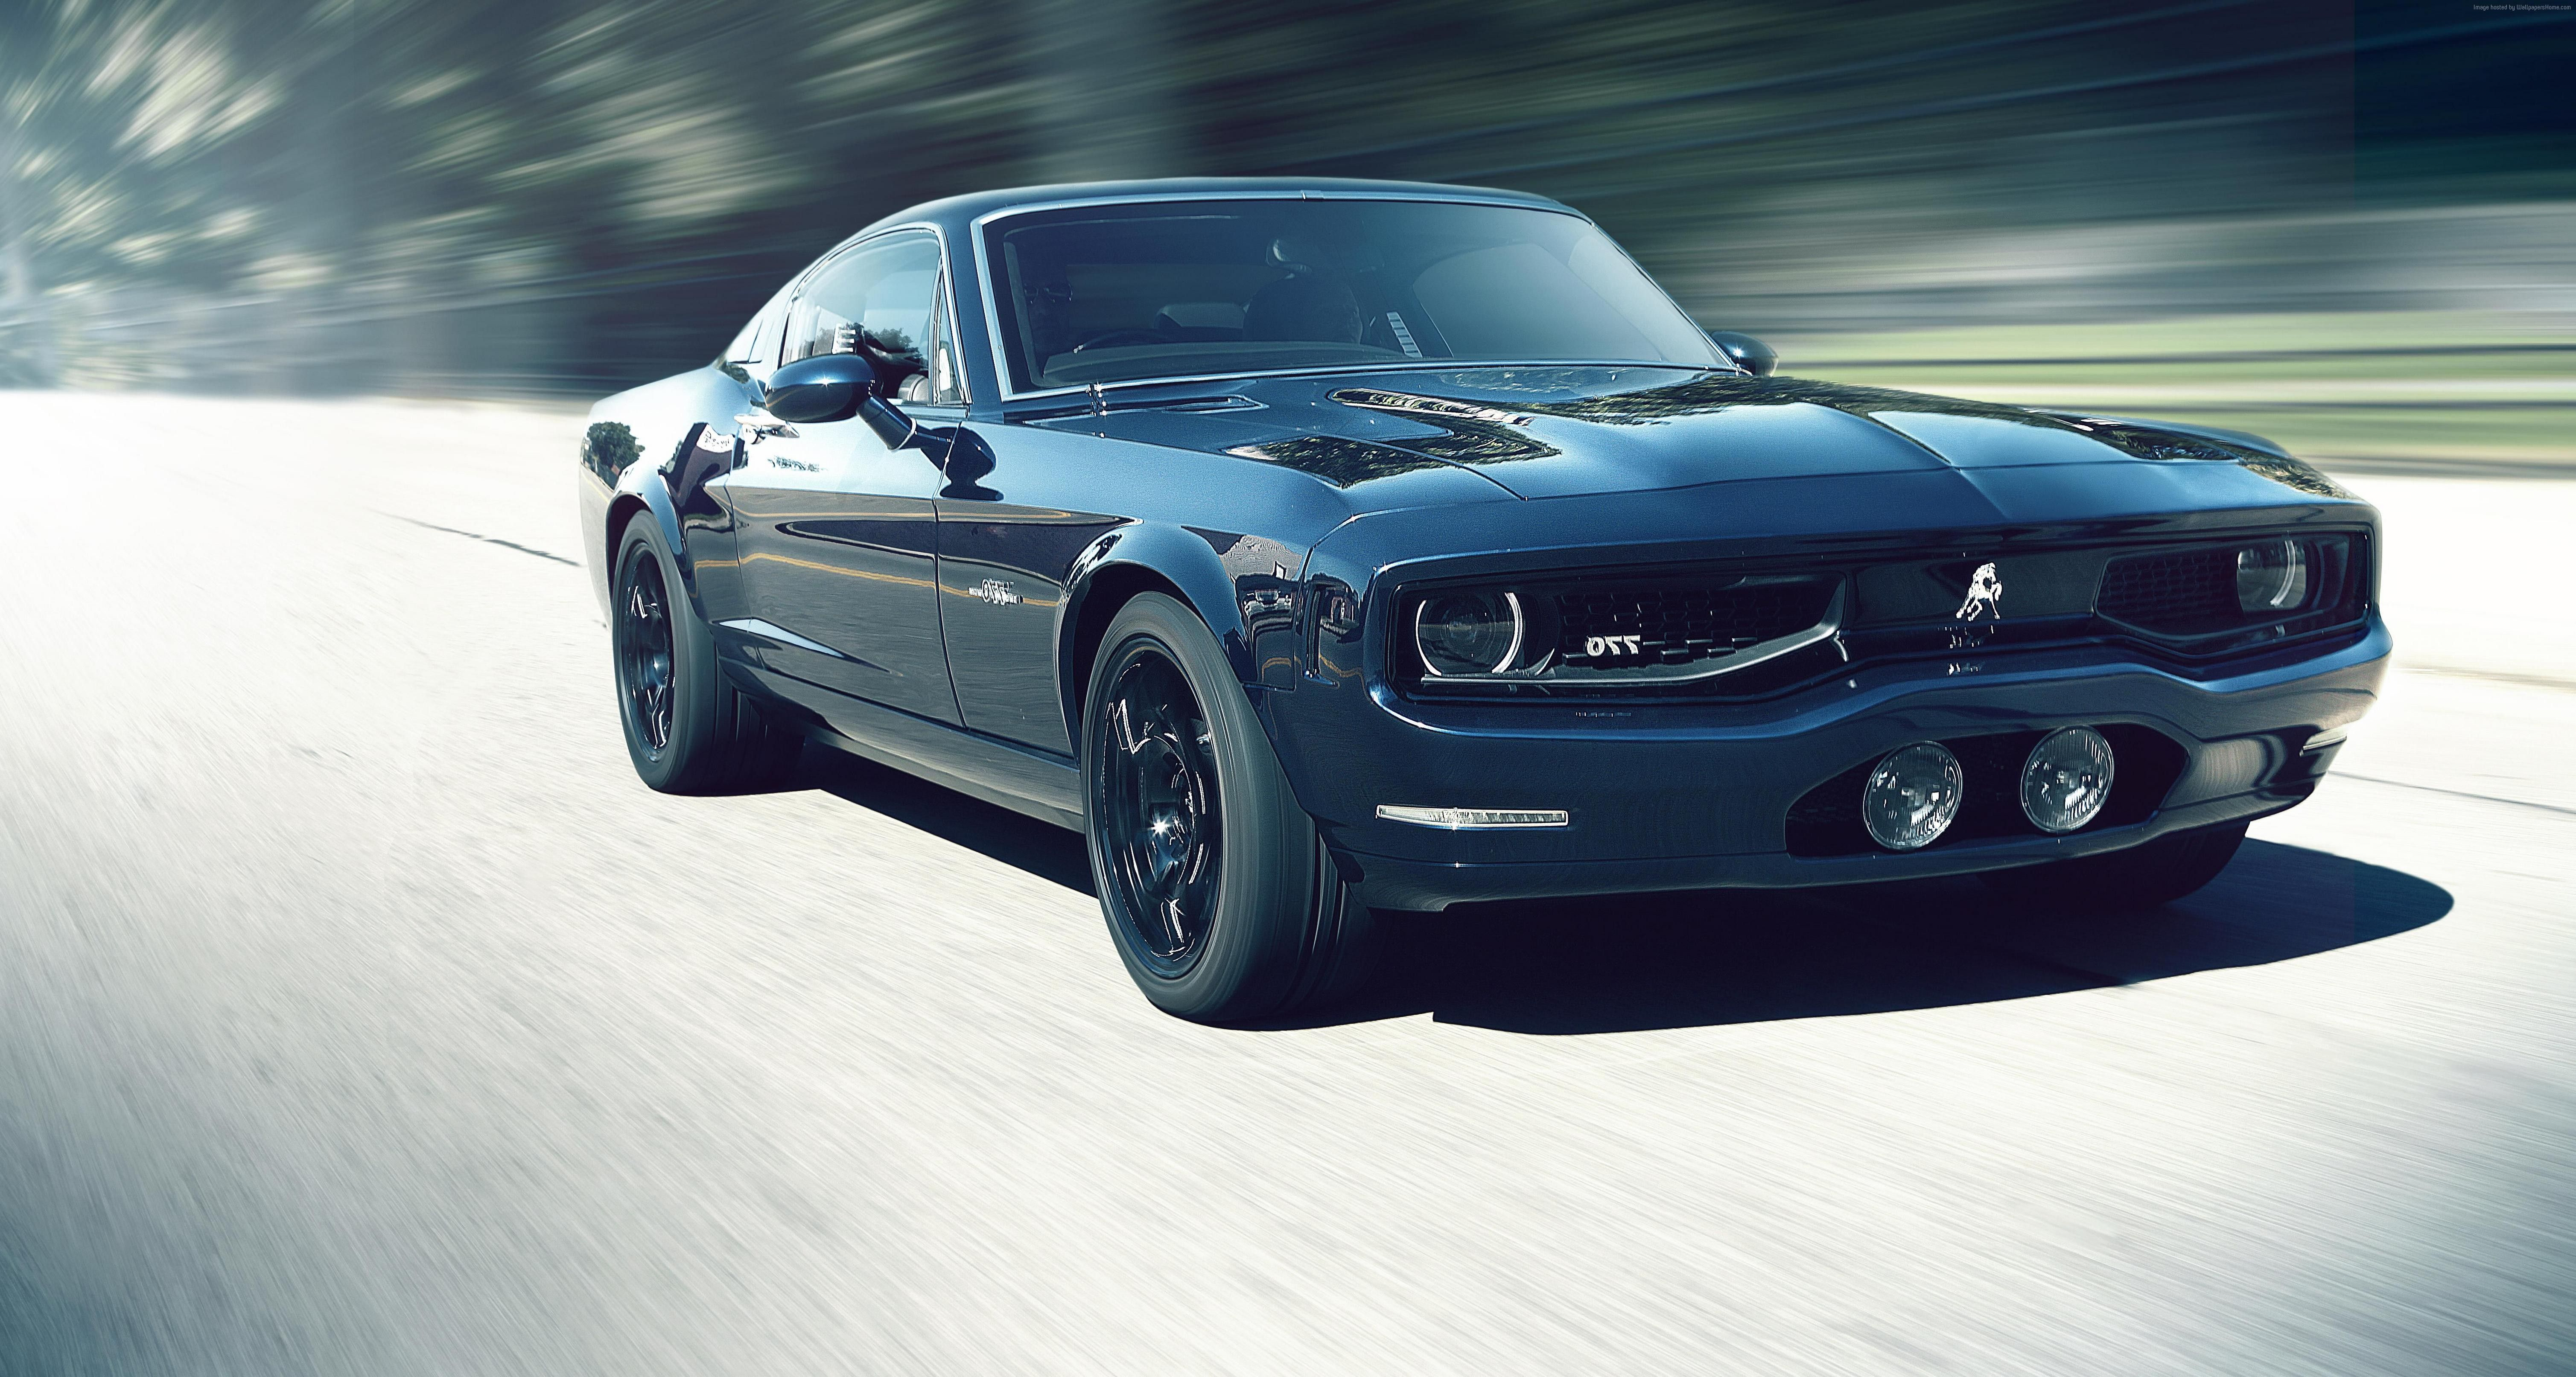 awesome Equus bass sports car 4k wallpaper | Cars UHD | Pinterest ...